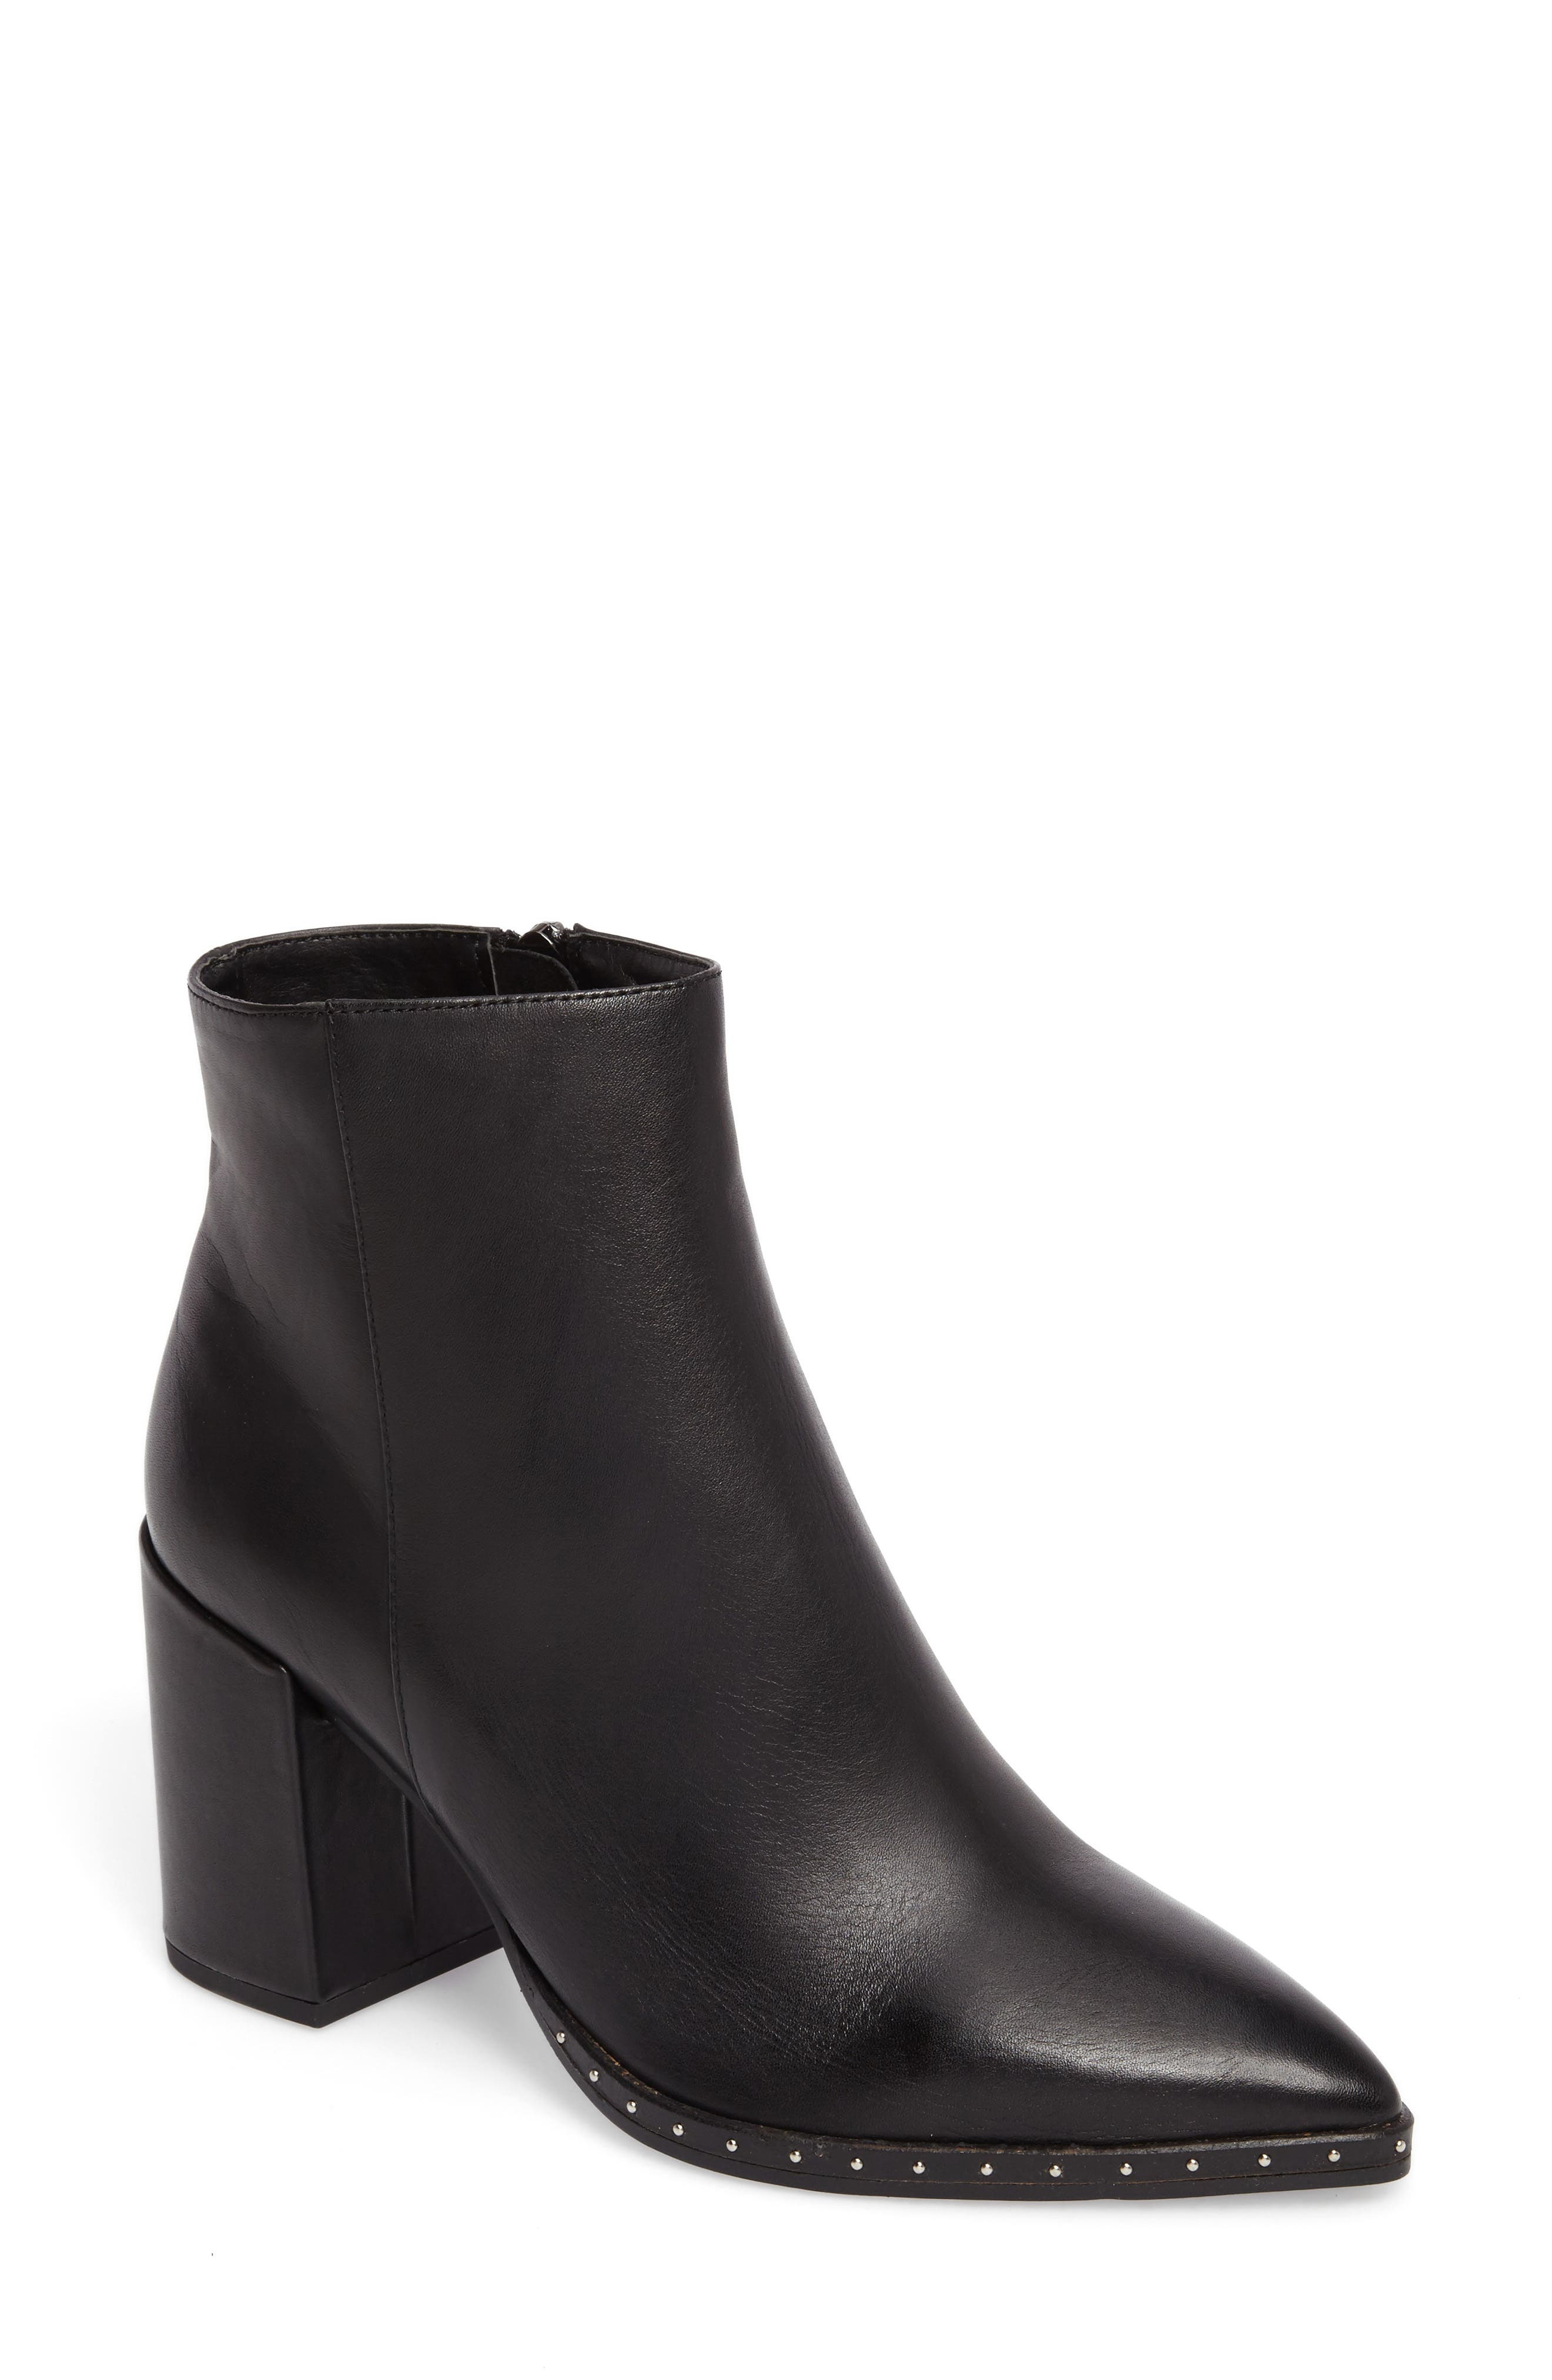 TONY BIANCO Bailey Pointy Toe Bootie in Black Nappa Leather